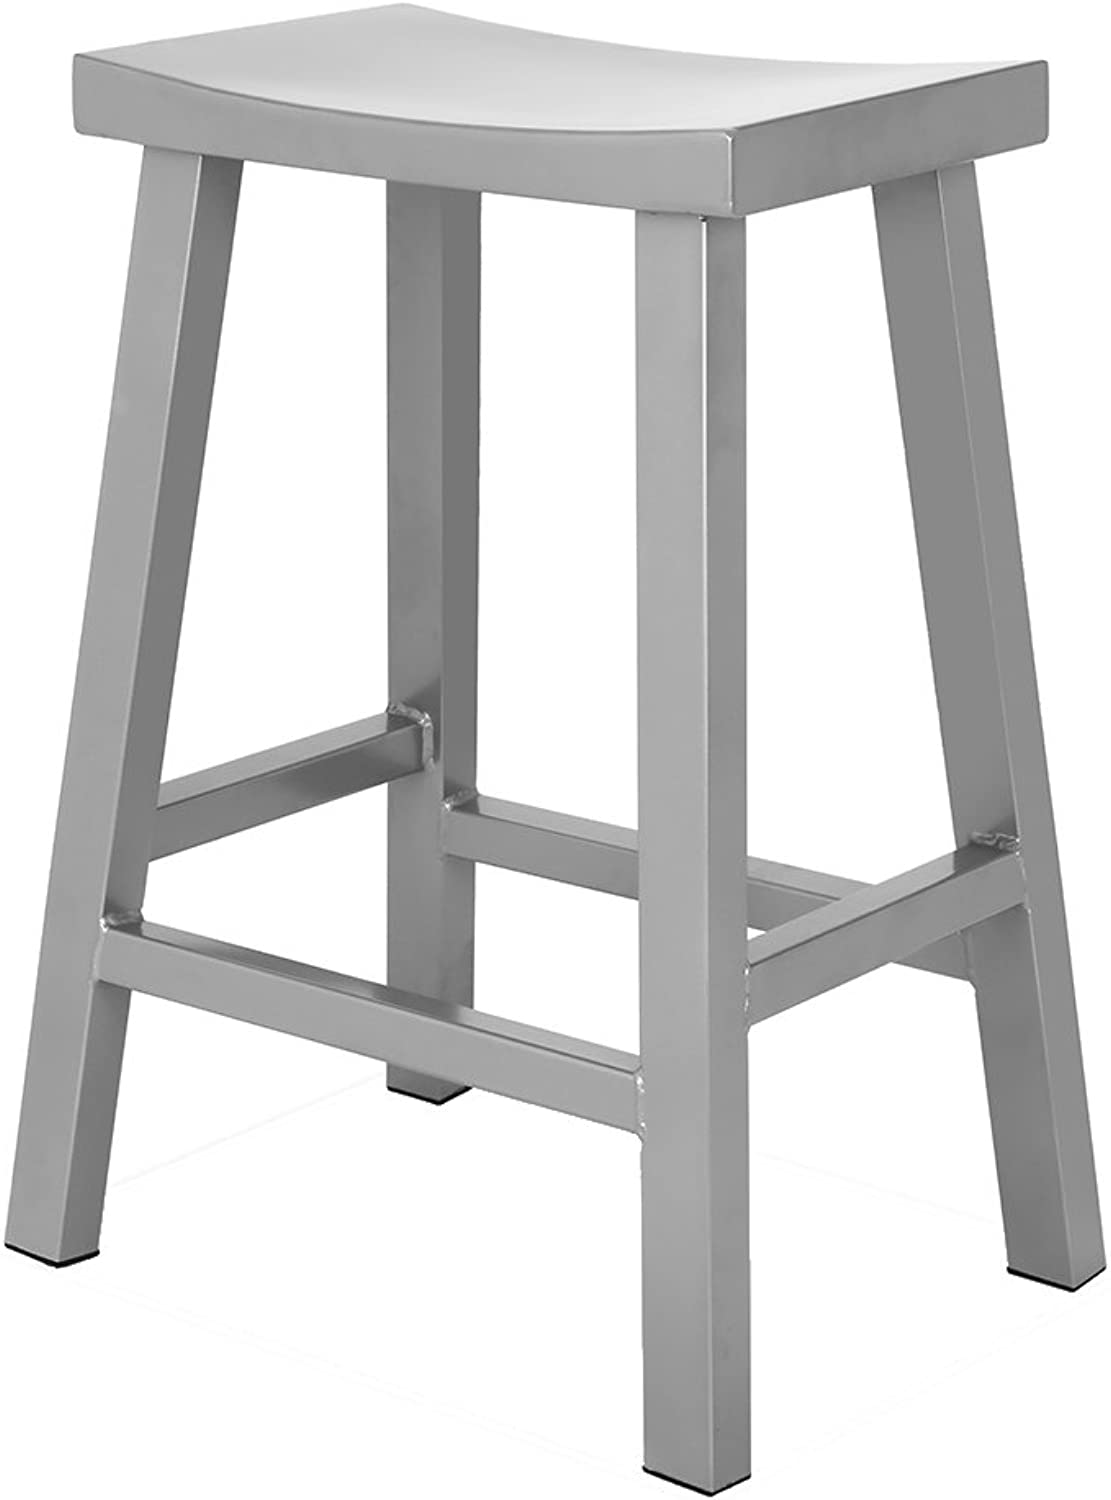 Renovoo Steel Saddle Seat Counter Stool, Commercial Quality, Silver Powder Coated Finish, 24 inches Seat Height, Indoor and Porch Use, 1 Pack